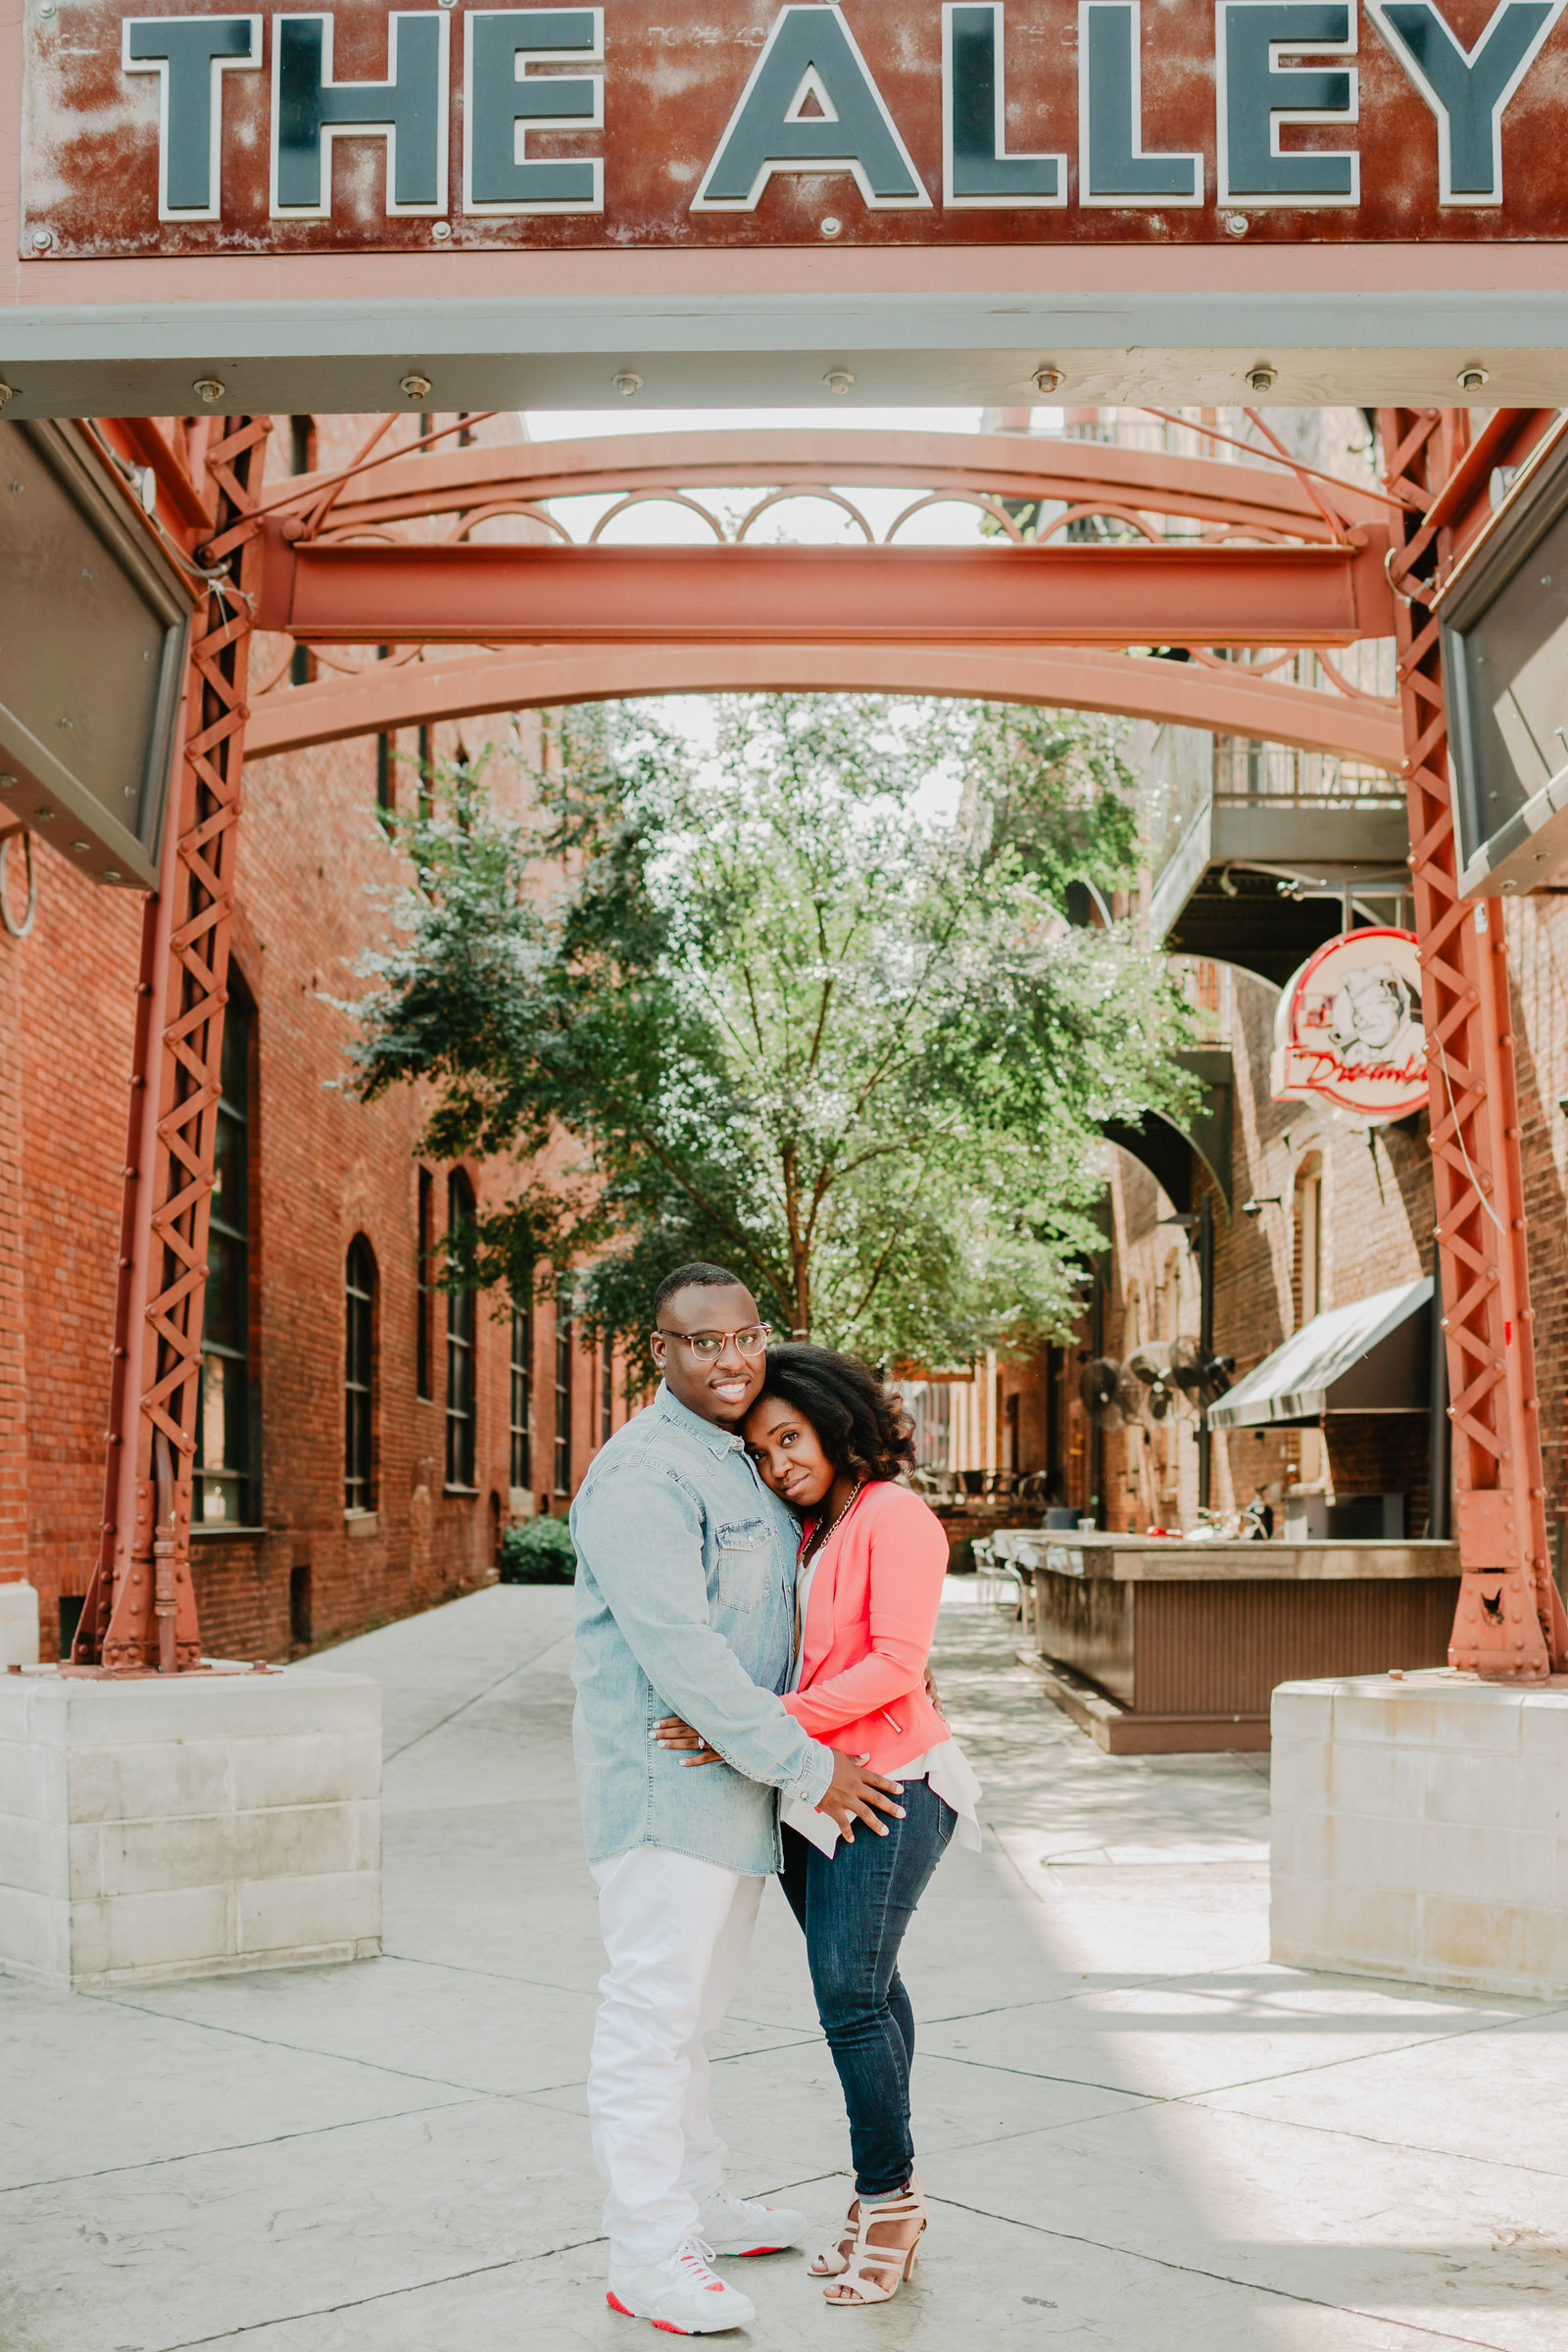 With the water tower above them atThe Alley, engaged couple looks directly at the camera with warm smiles